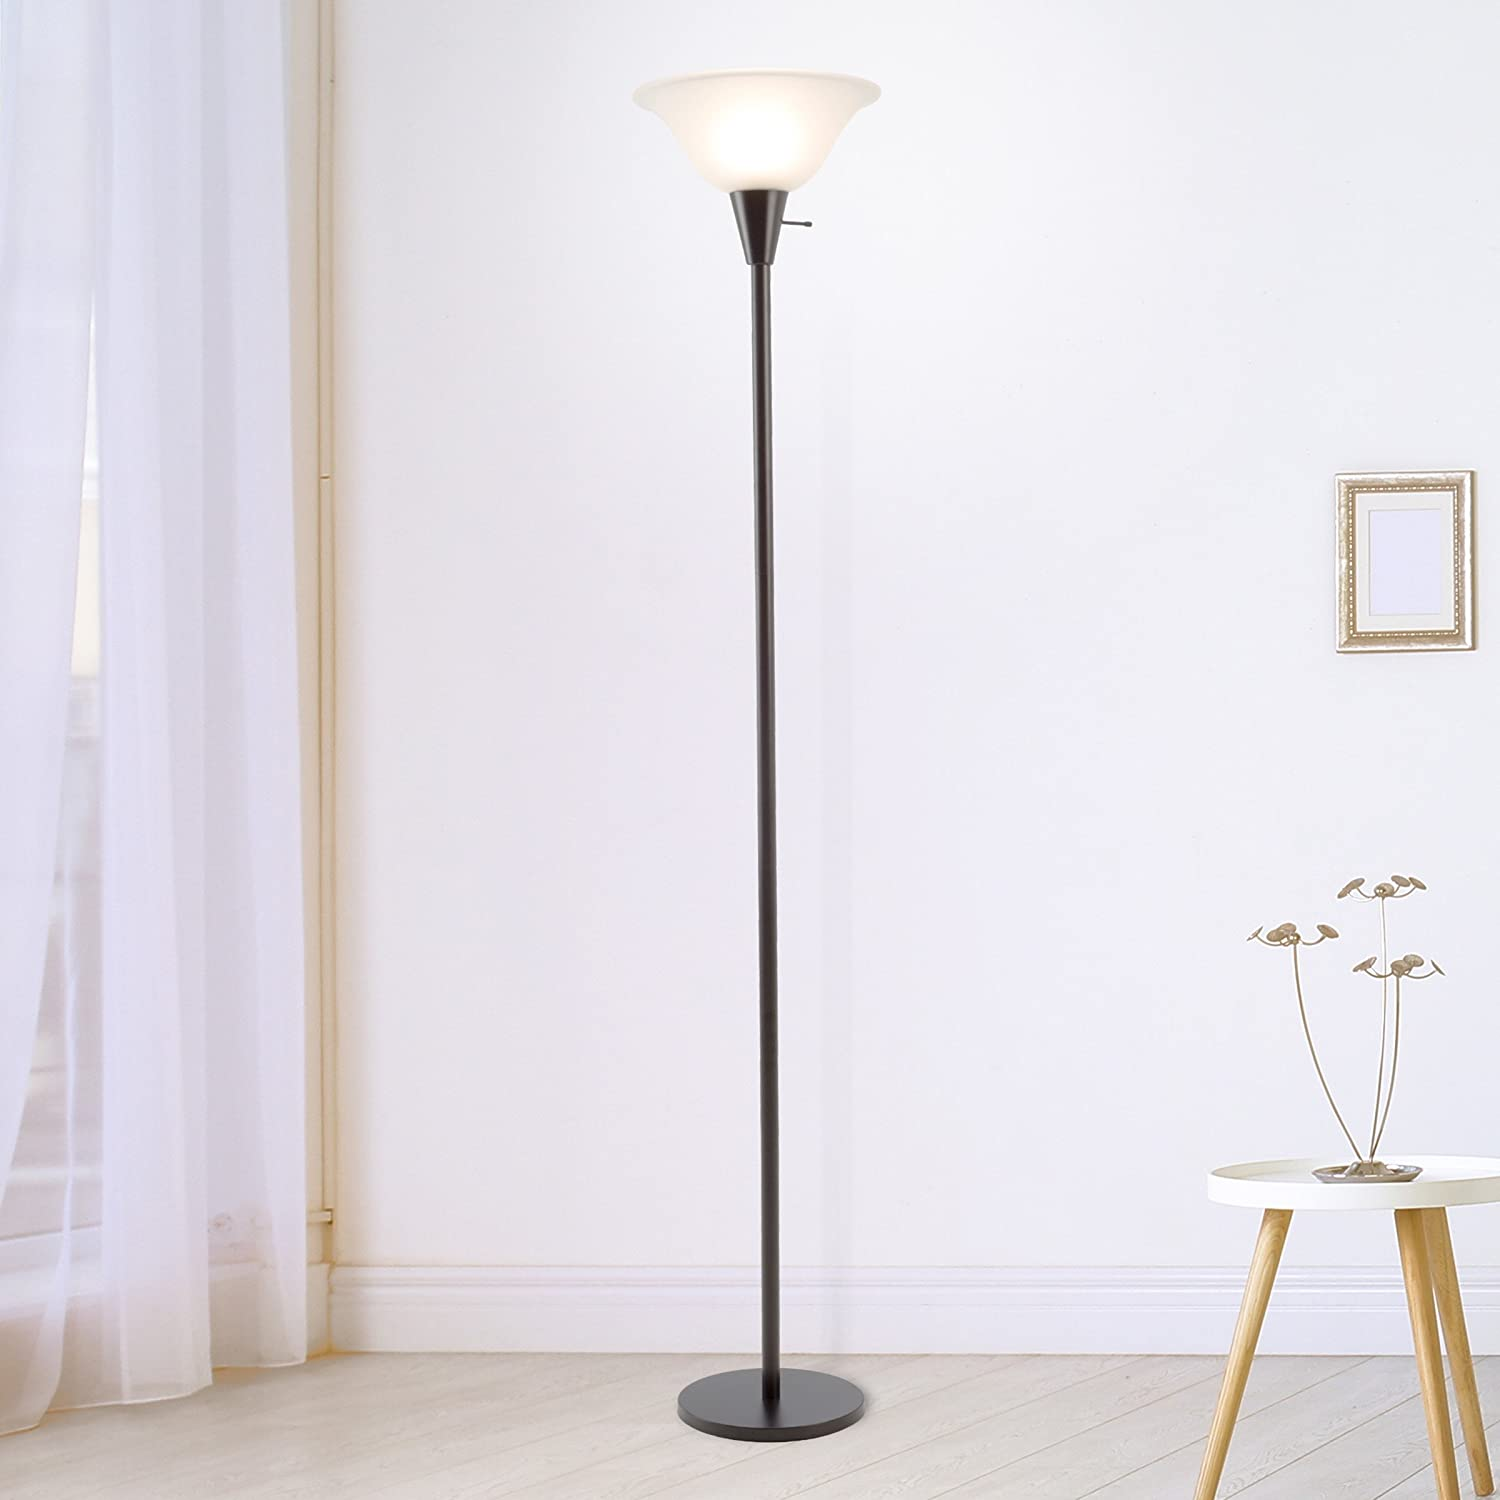 Lavish Home 72 Torch 1 Torchiere Floor Lamp Standing Light With Sturdy Metal Base And Frosted Glass Shade Energy Saving Led Bulb Included Black Furniture Decor